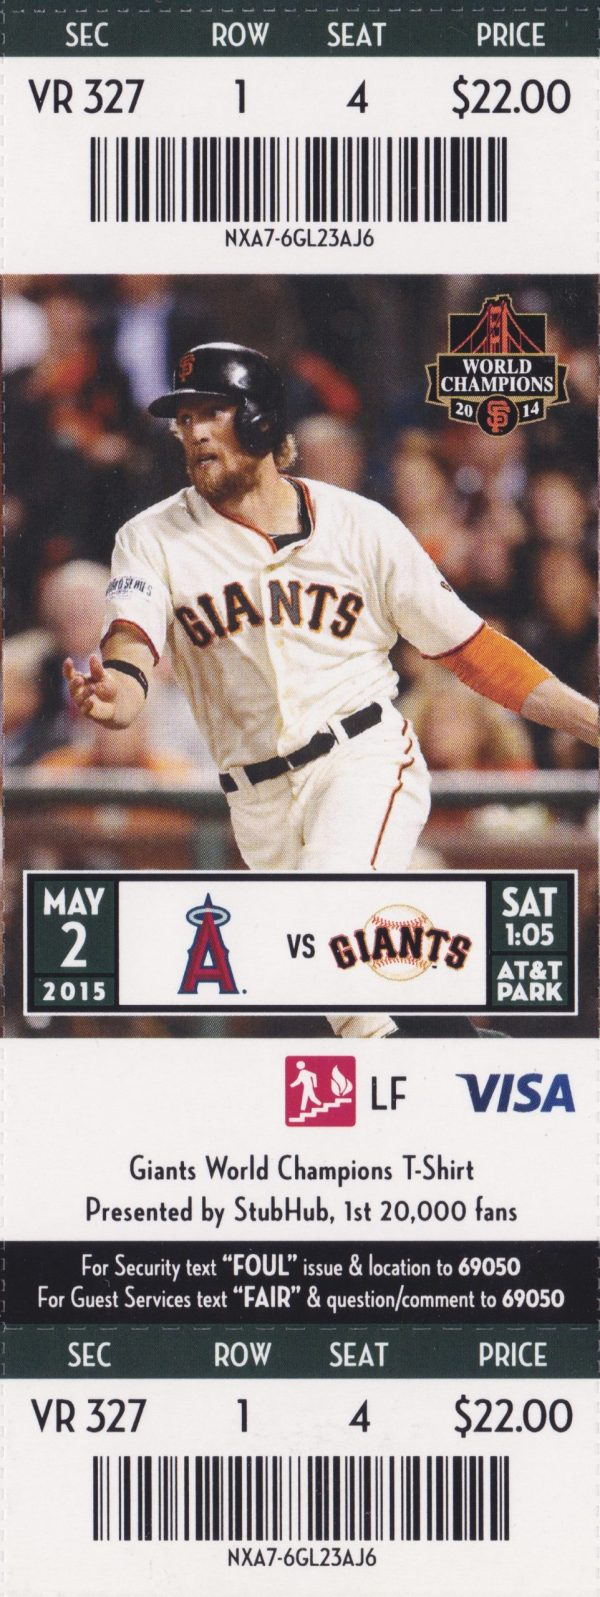 2015 Giants Full Ticket vs Angels May 2 Trout Pujols Posey